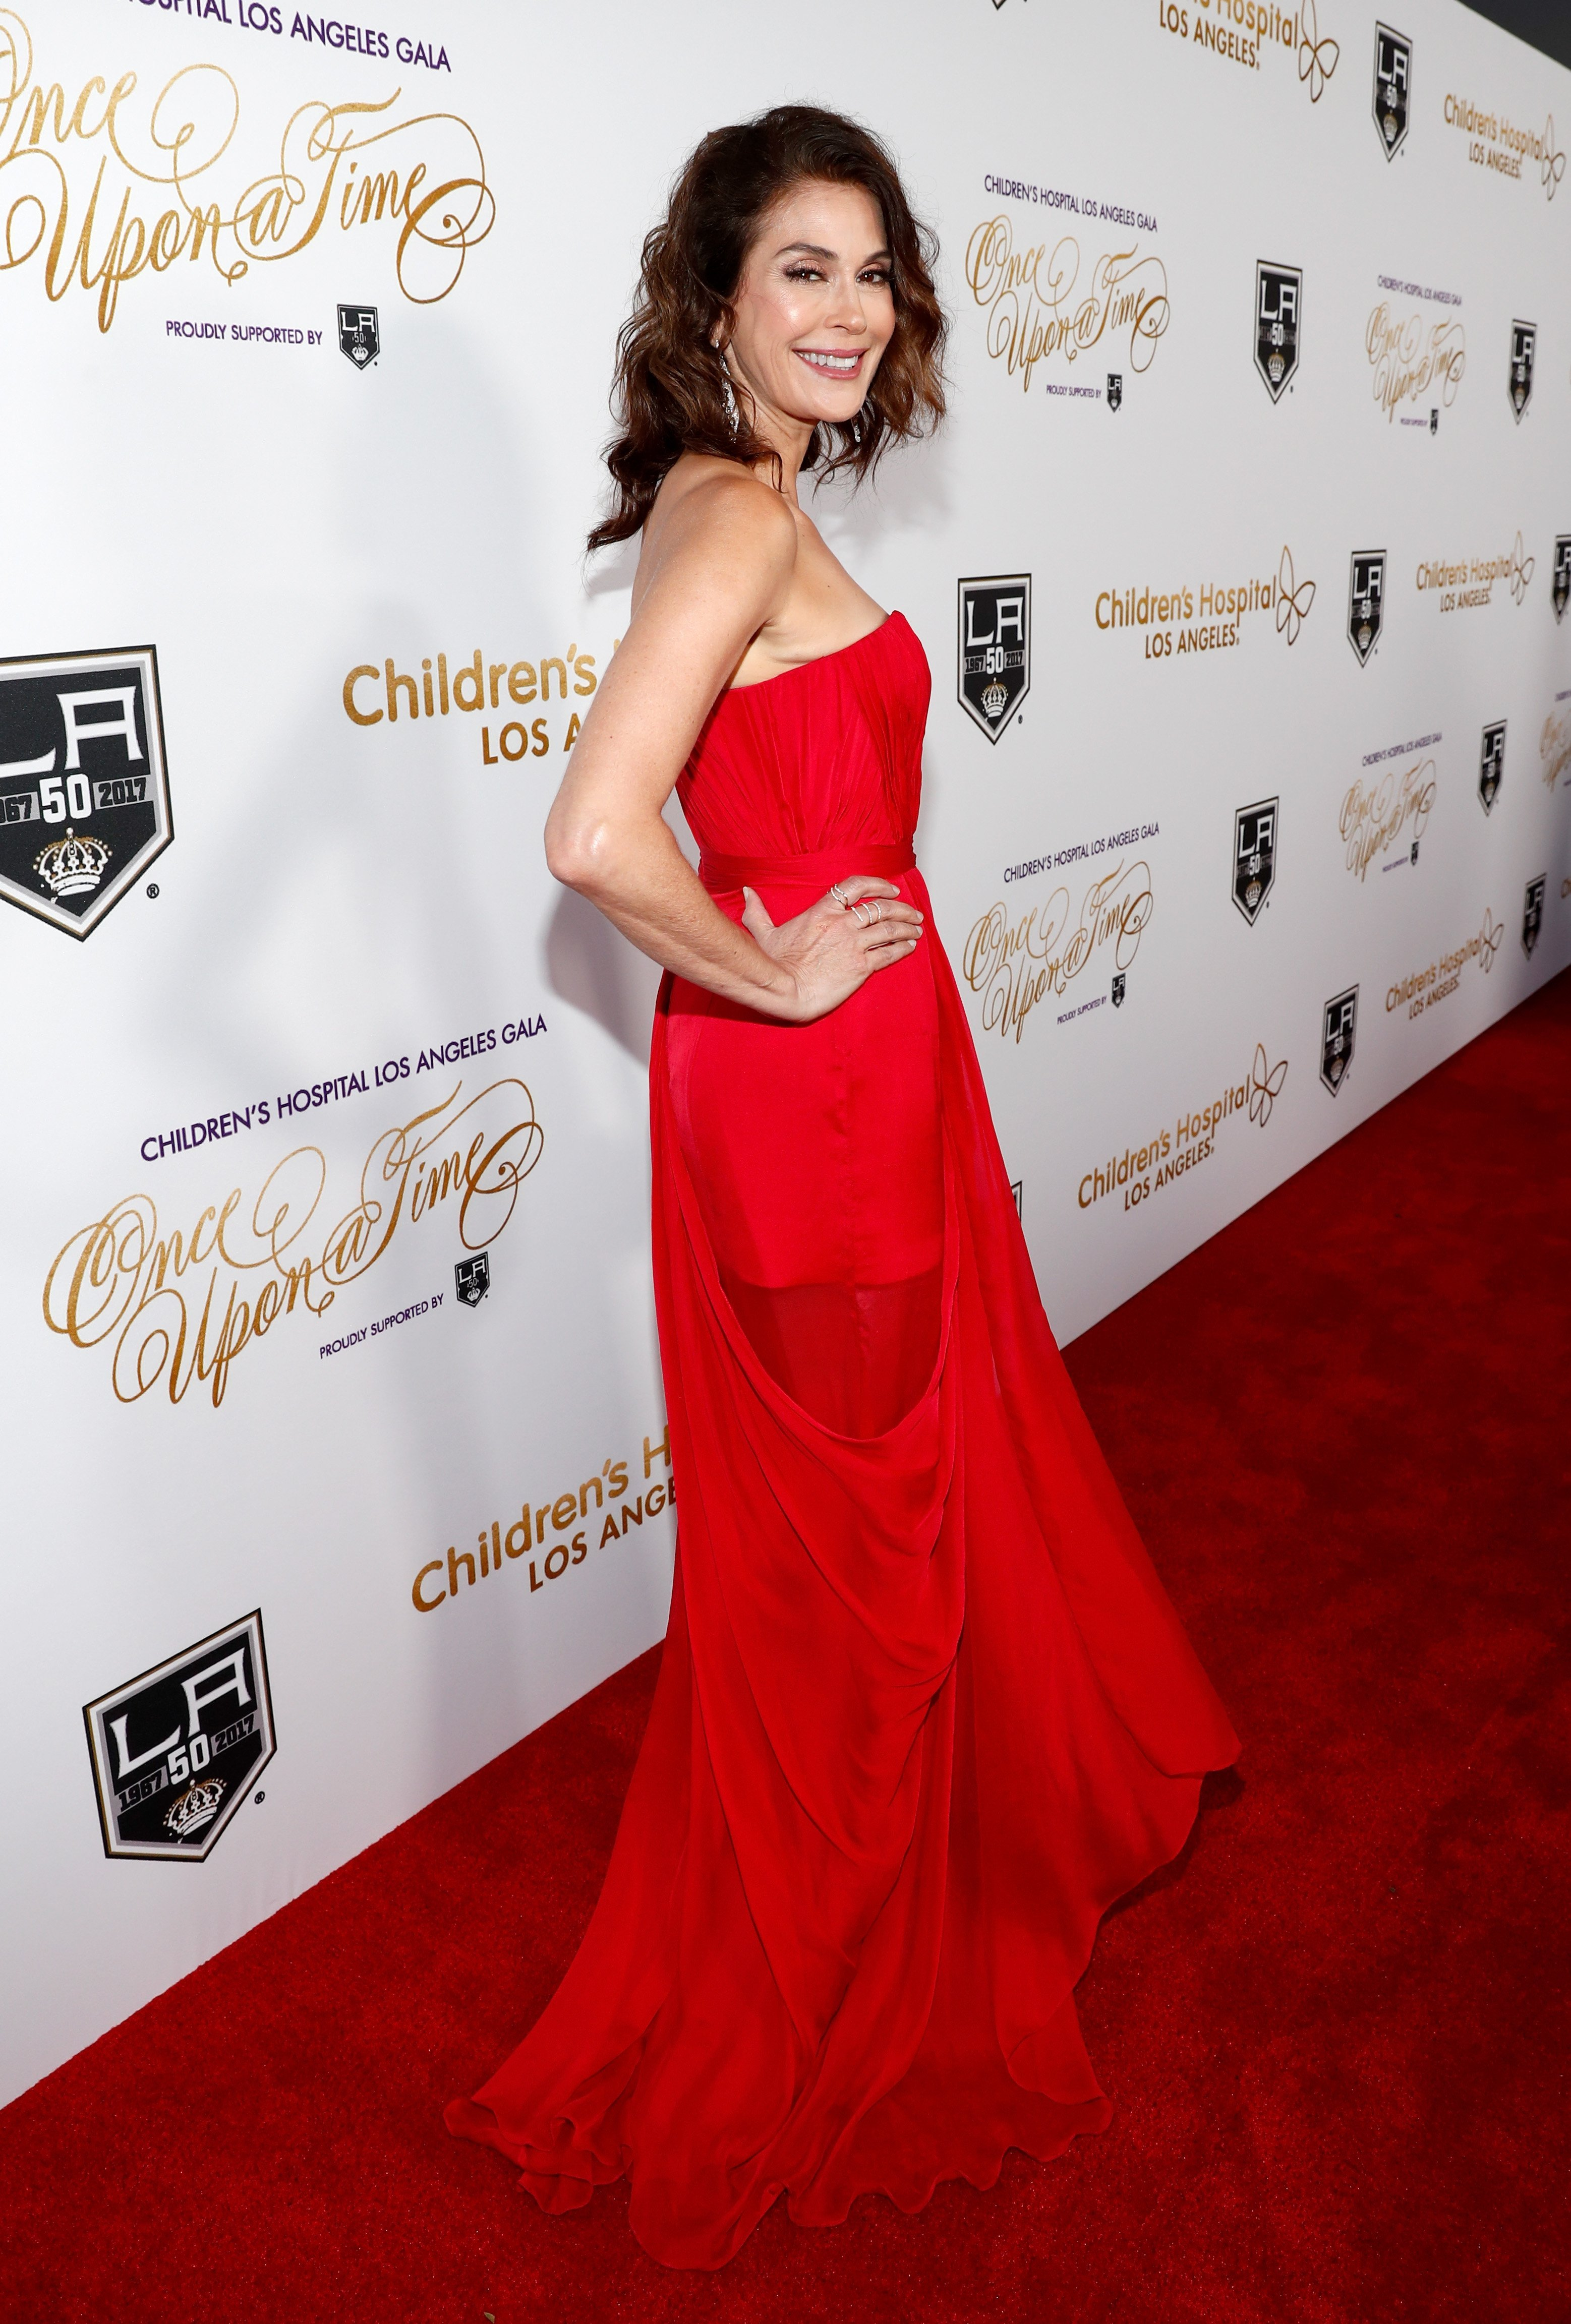 """Teri Hatcher attends 2016 Children's Hospital Los Angeles """"Once Upon a Time"""" Gala at The Event Deck at L.A. Live on October 15, 2016, in Los Angeles, California. 